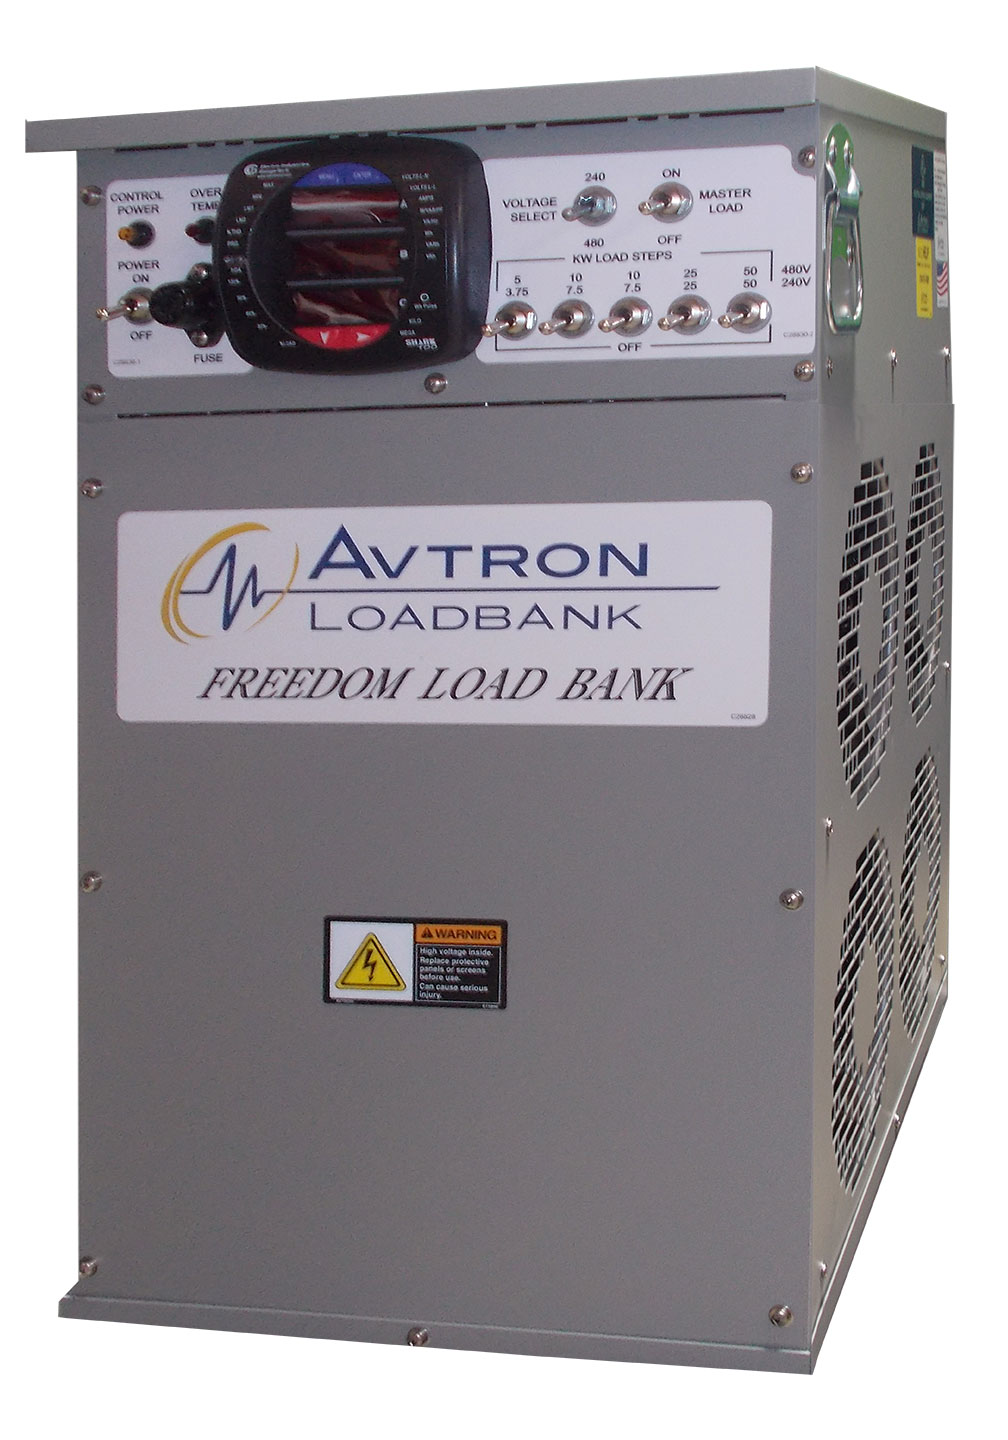 ASCO LPH-100 Compact, Portable AC Load Bank 100 KW